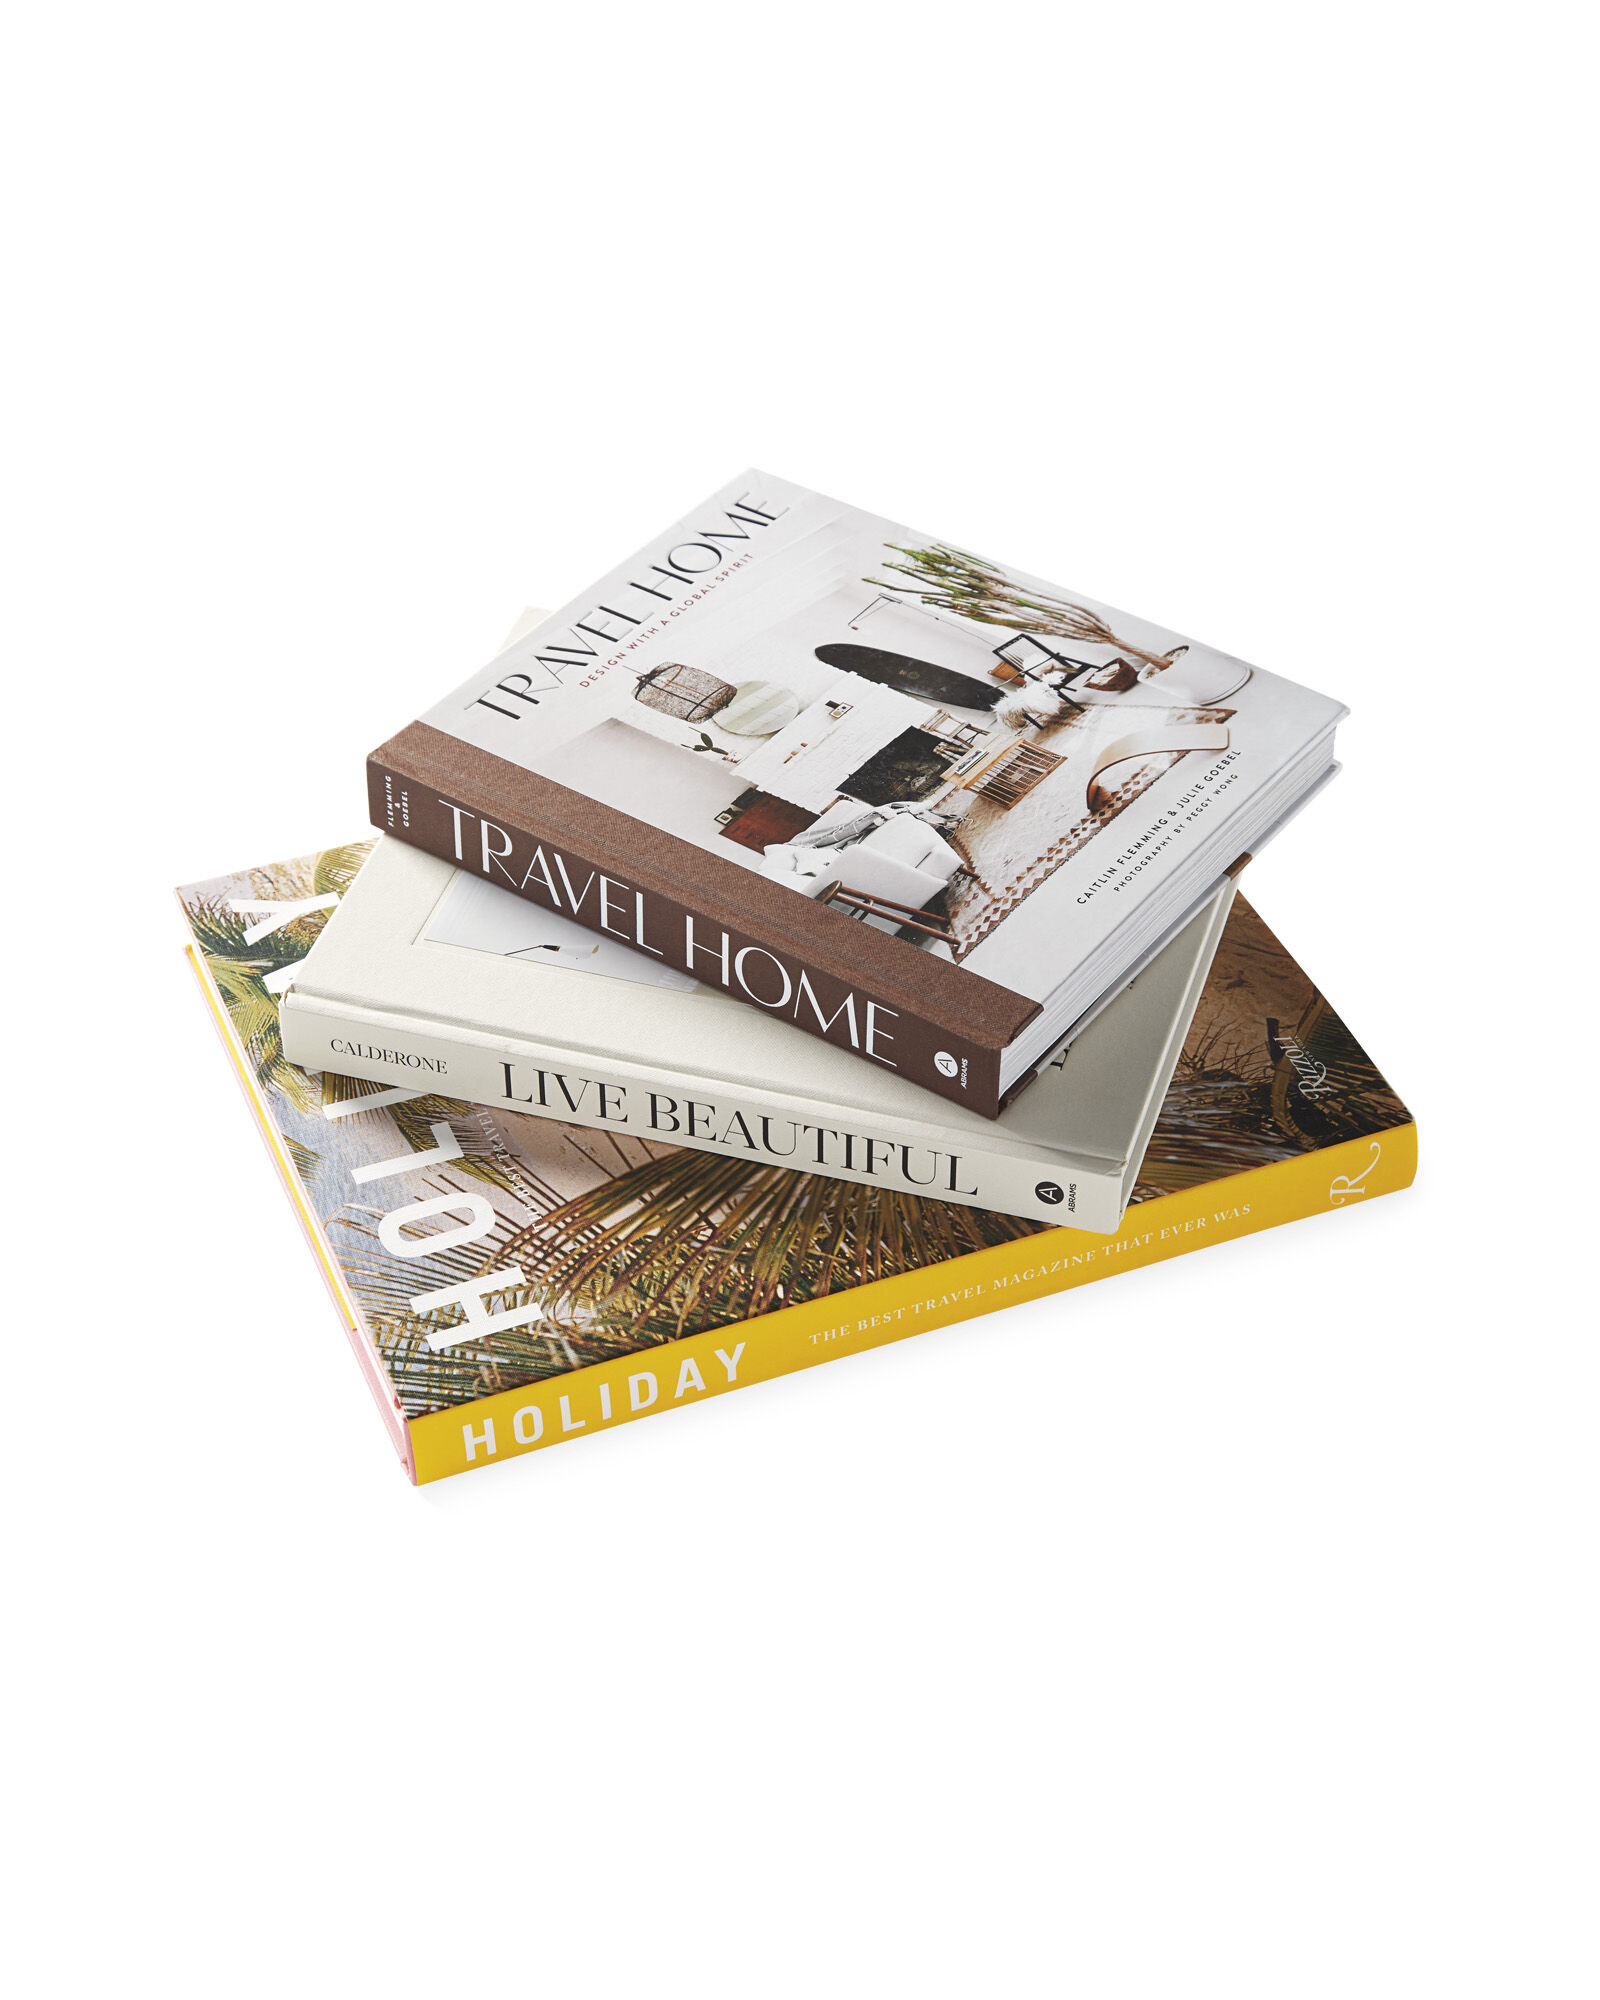 Coffee Table Books (Set of 3)